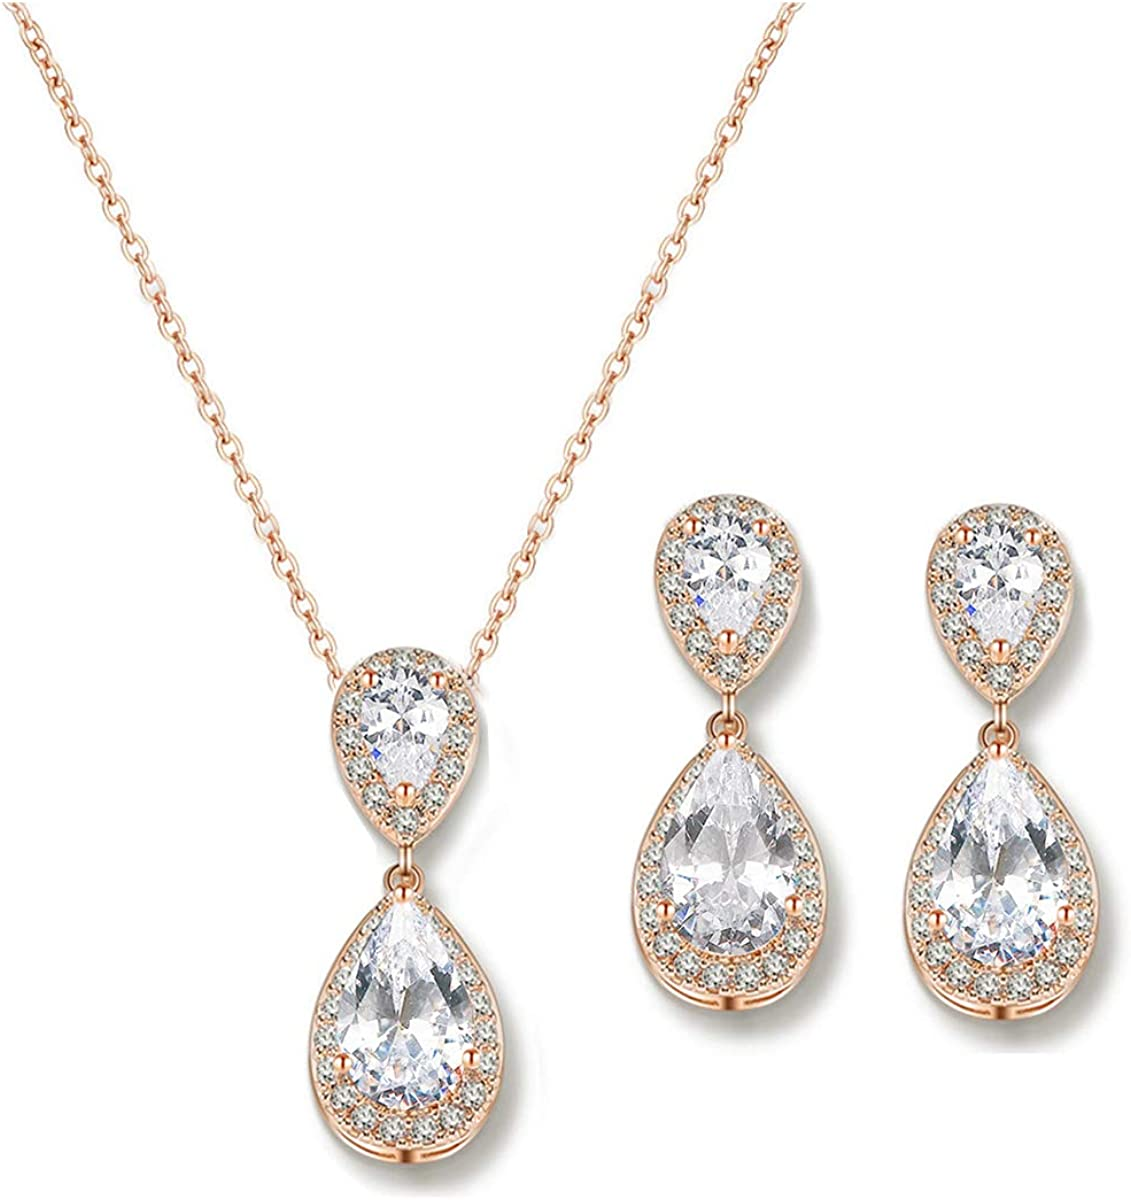 UDORA Teardrop Cubic Zirconia Drop Earrings Necklace Bridal Jewelry Sets Wedding Prom Gifts For Bridesmaid